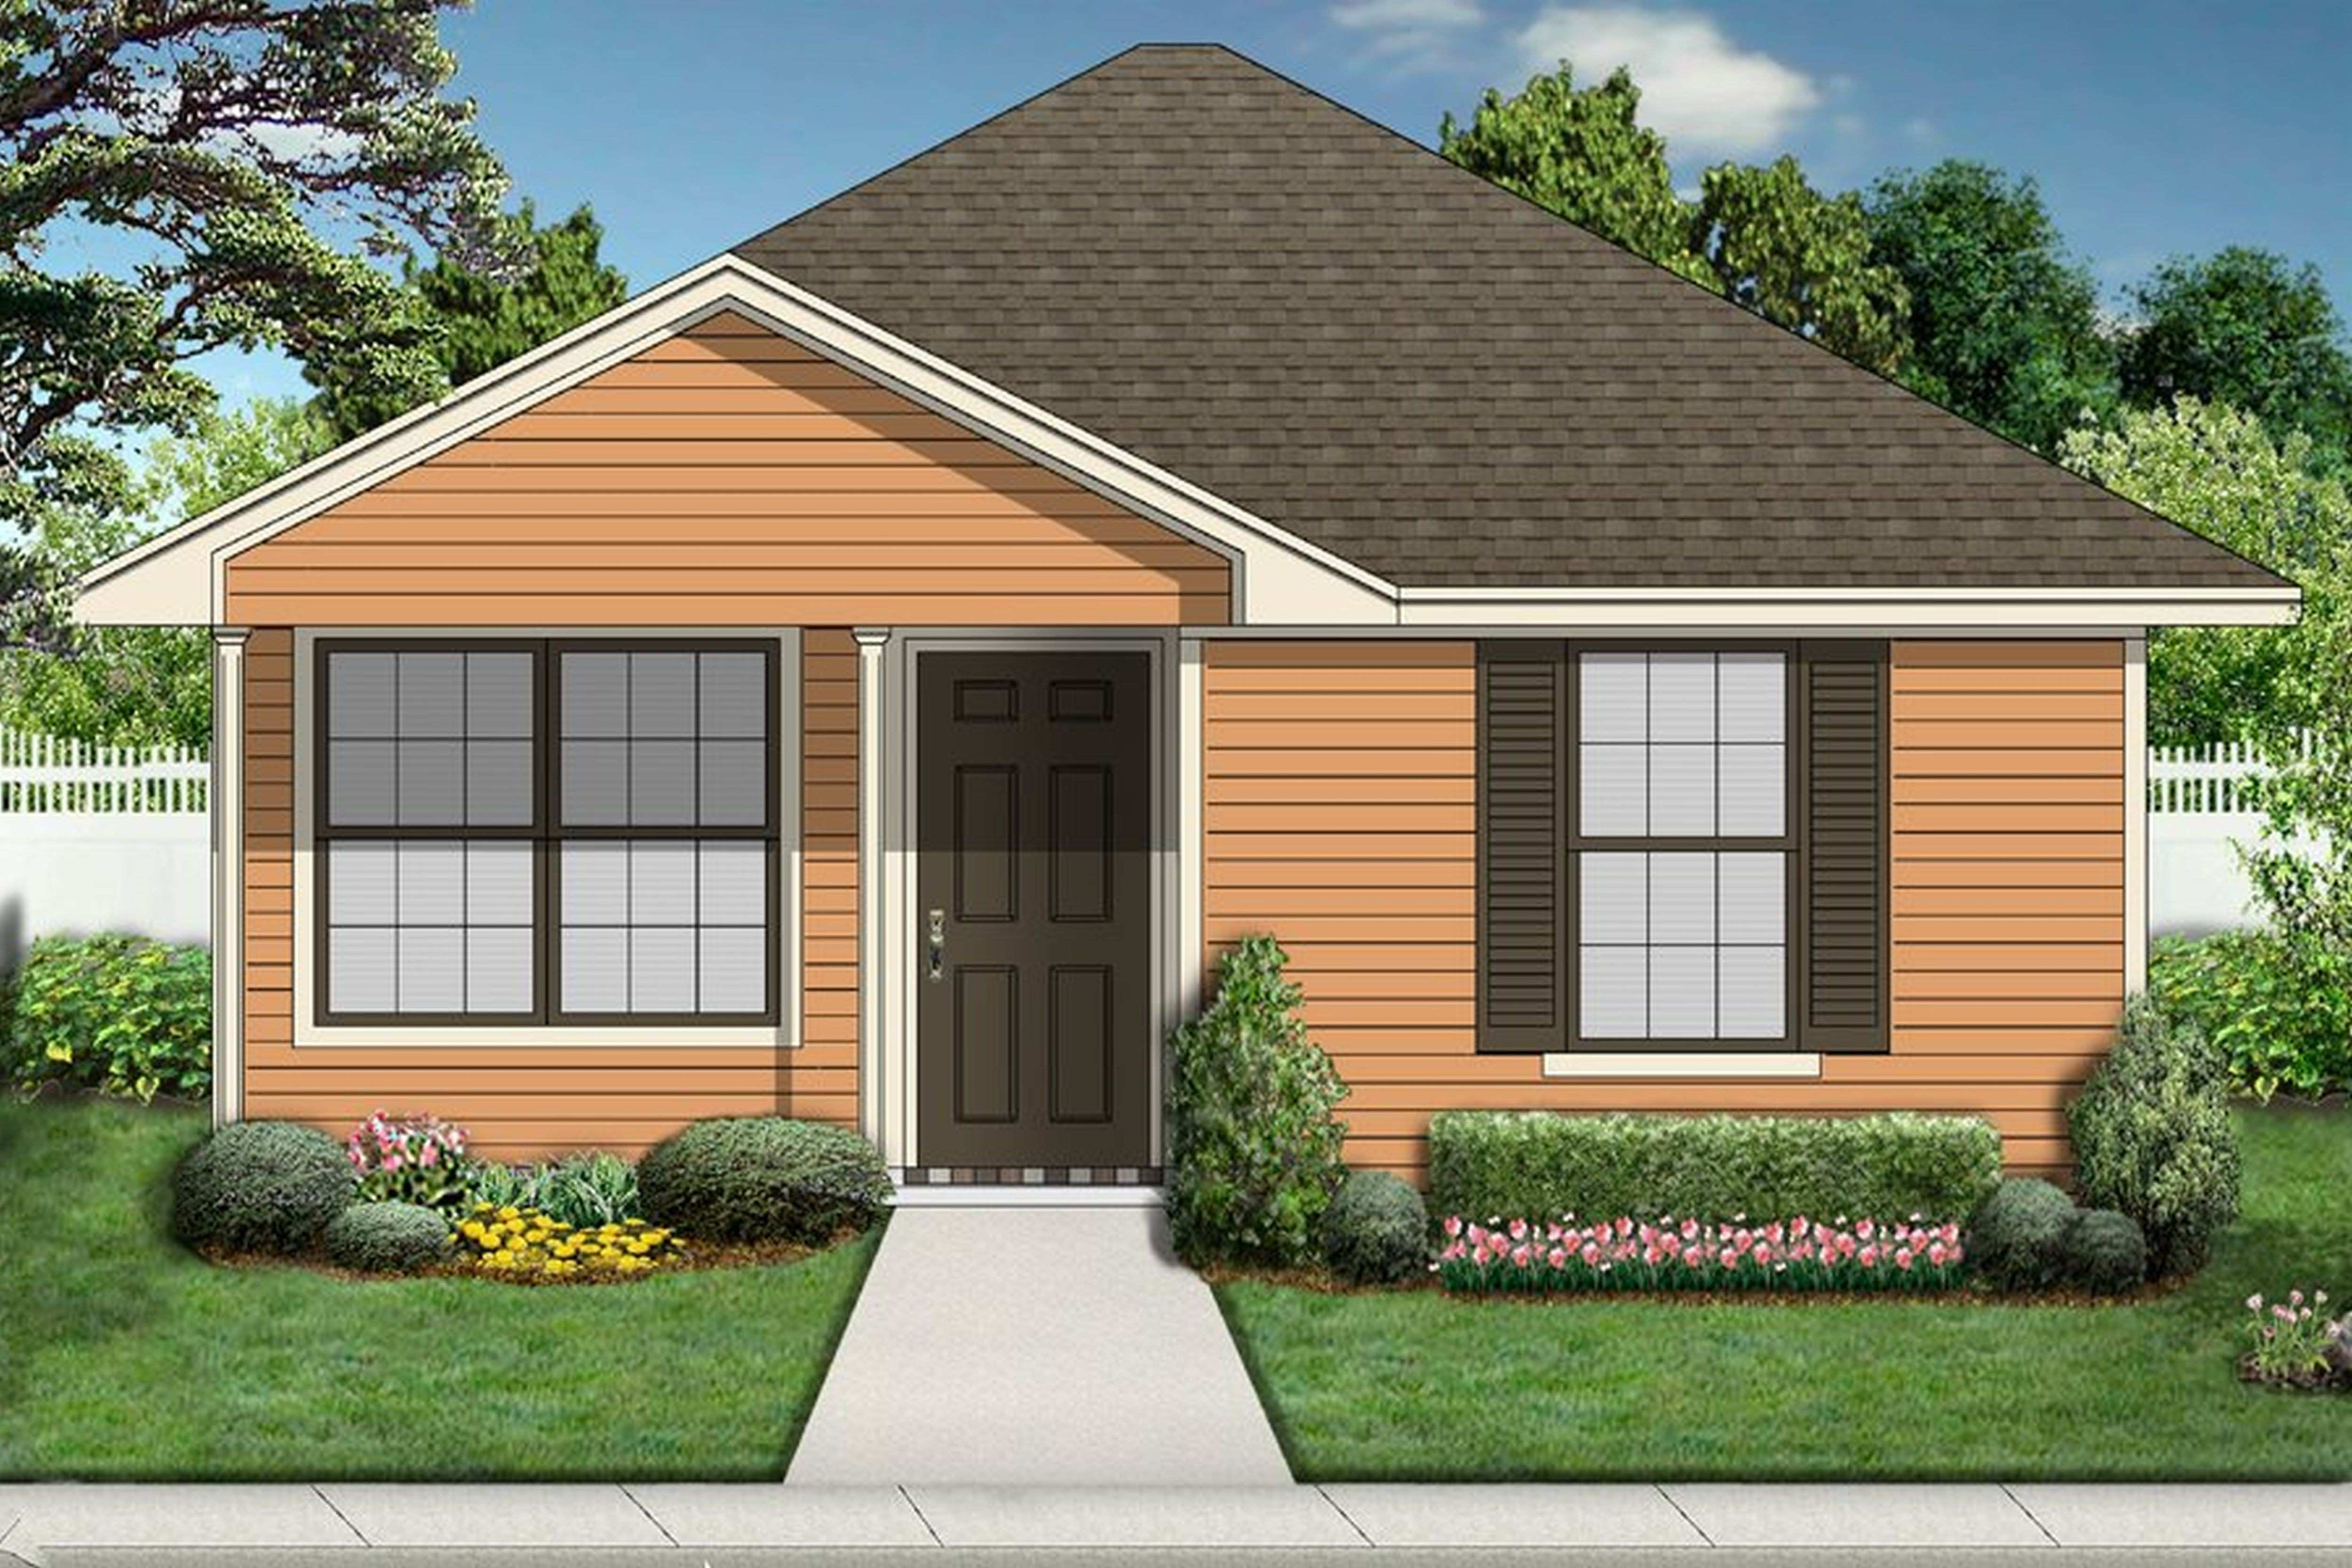 House Designs Exterior with House Plans Simple House Plans In